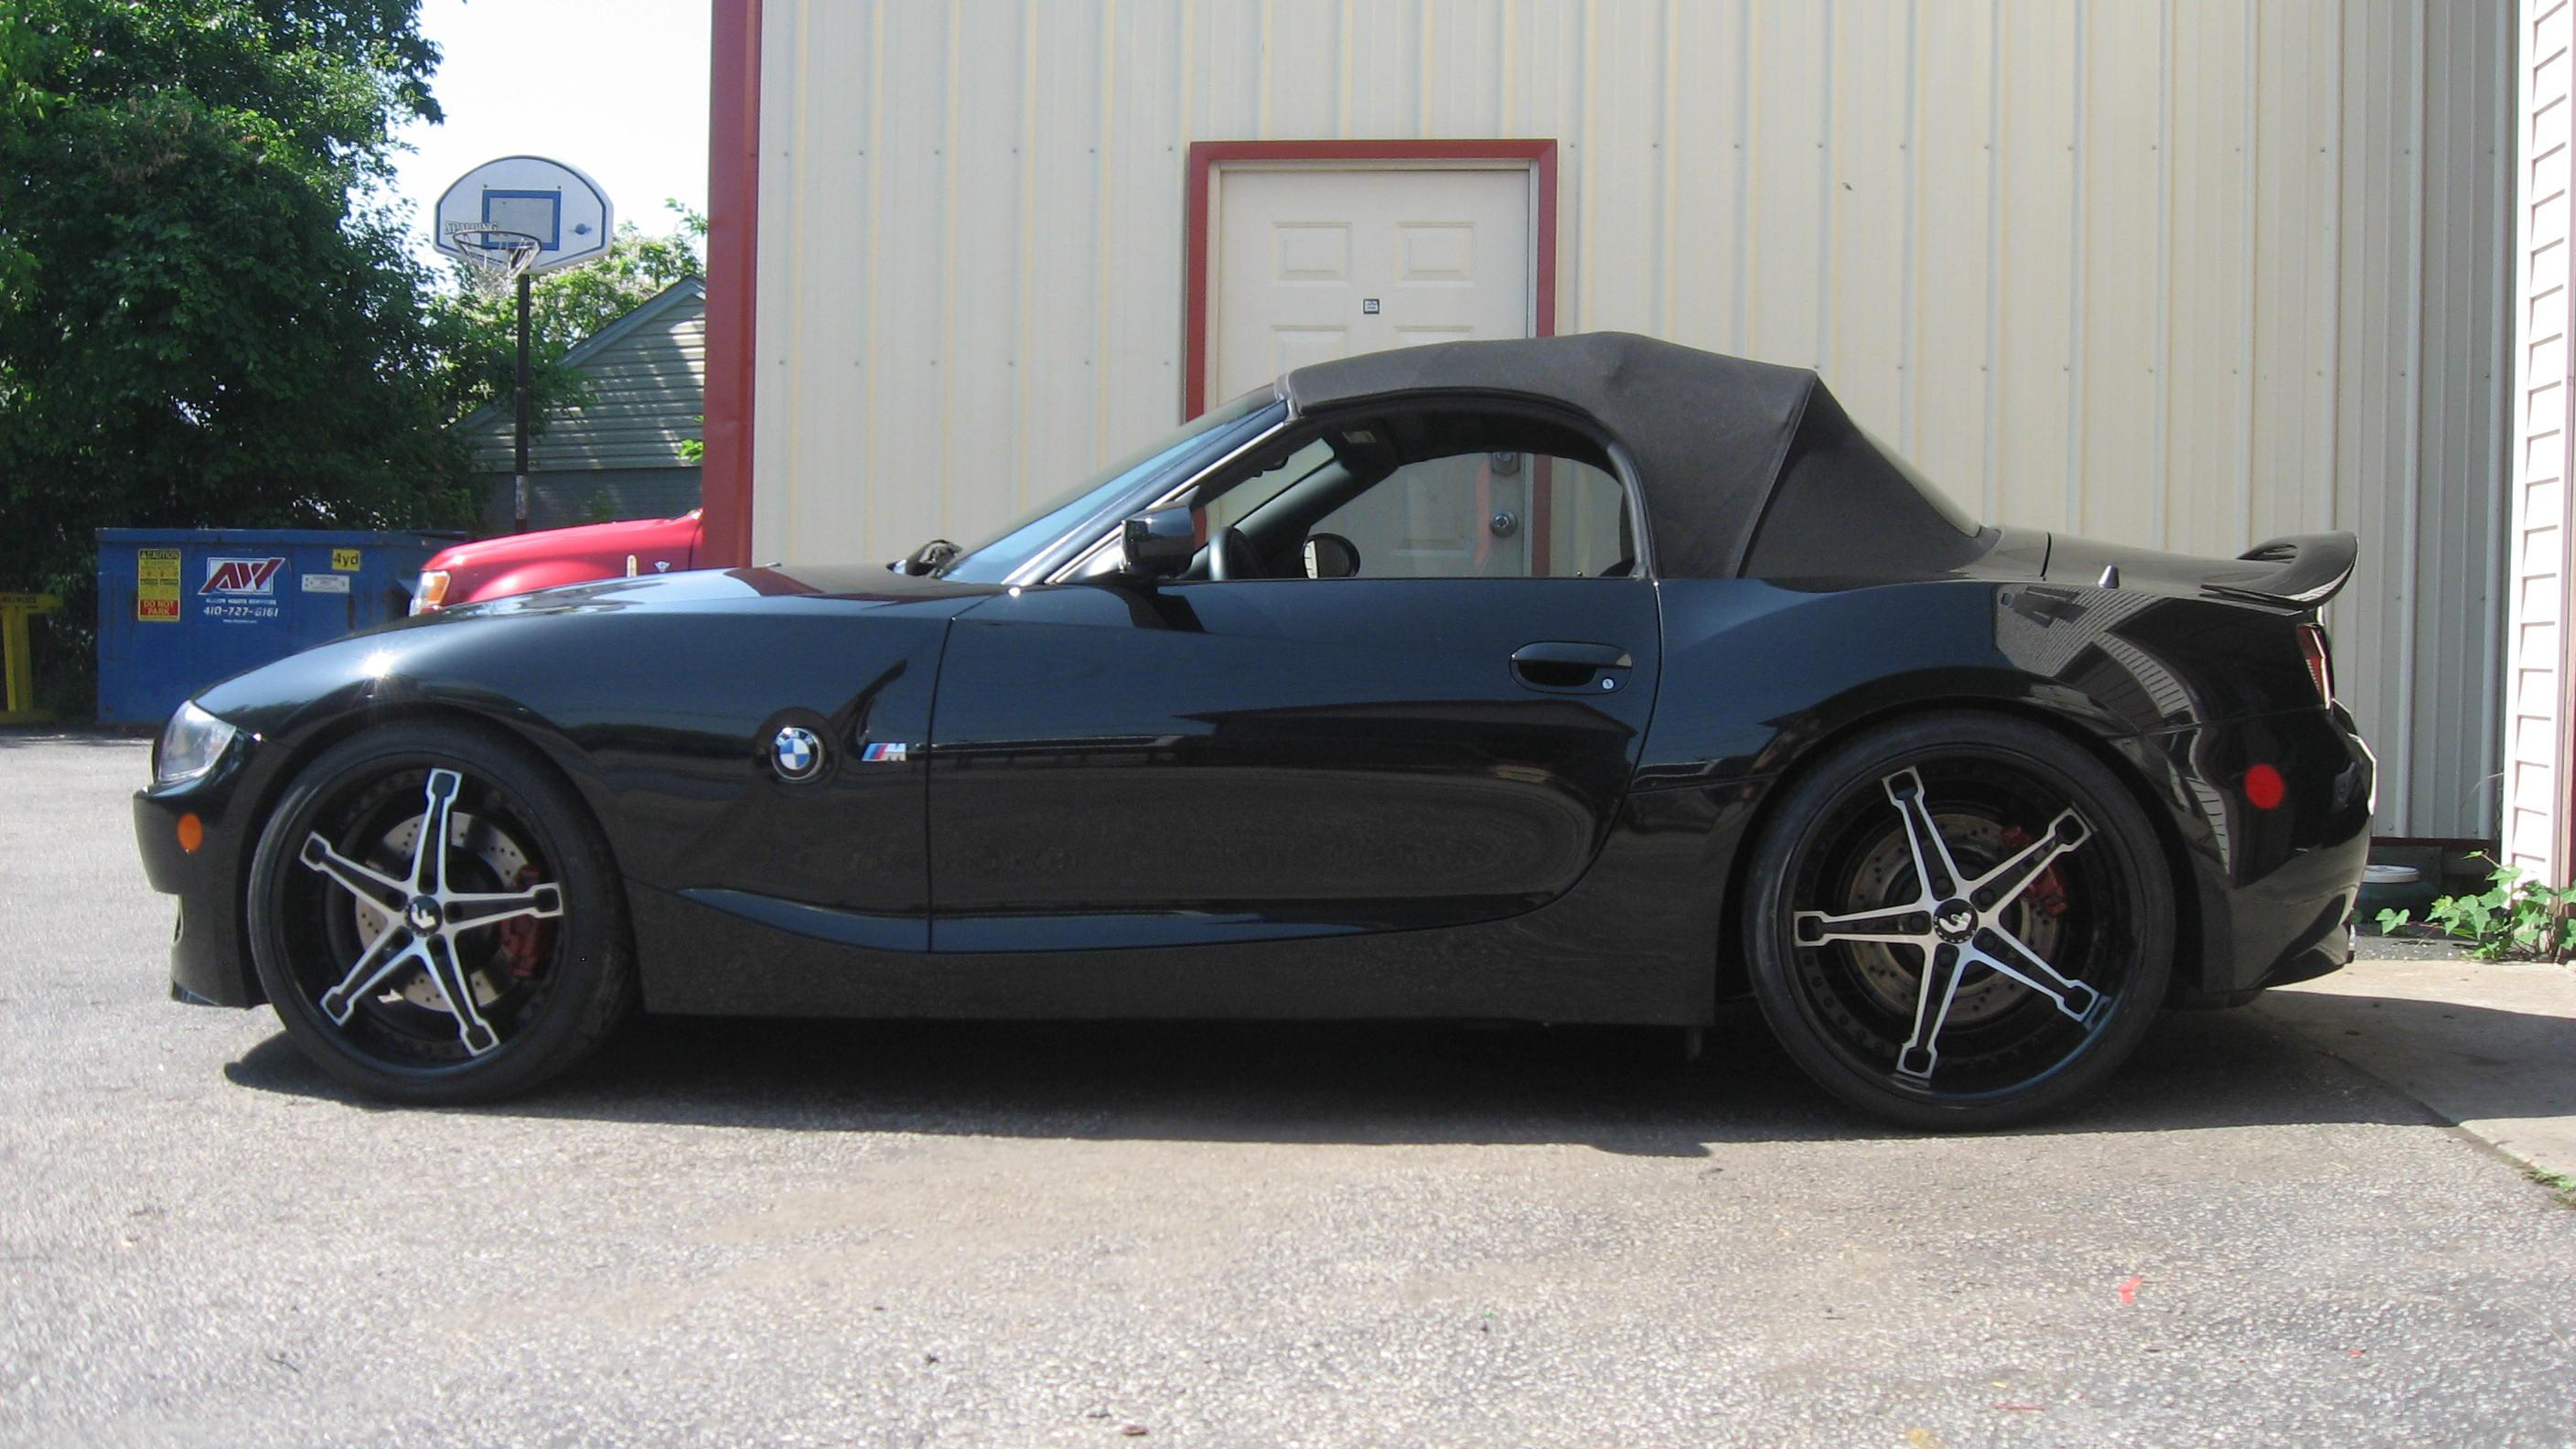 atoautosports 2008 bmw z4 mcoupe 2d specs, photos, modification